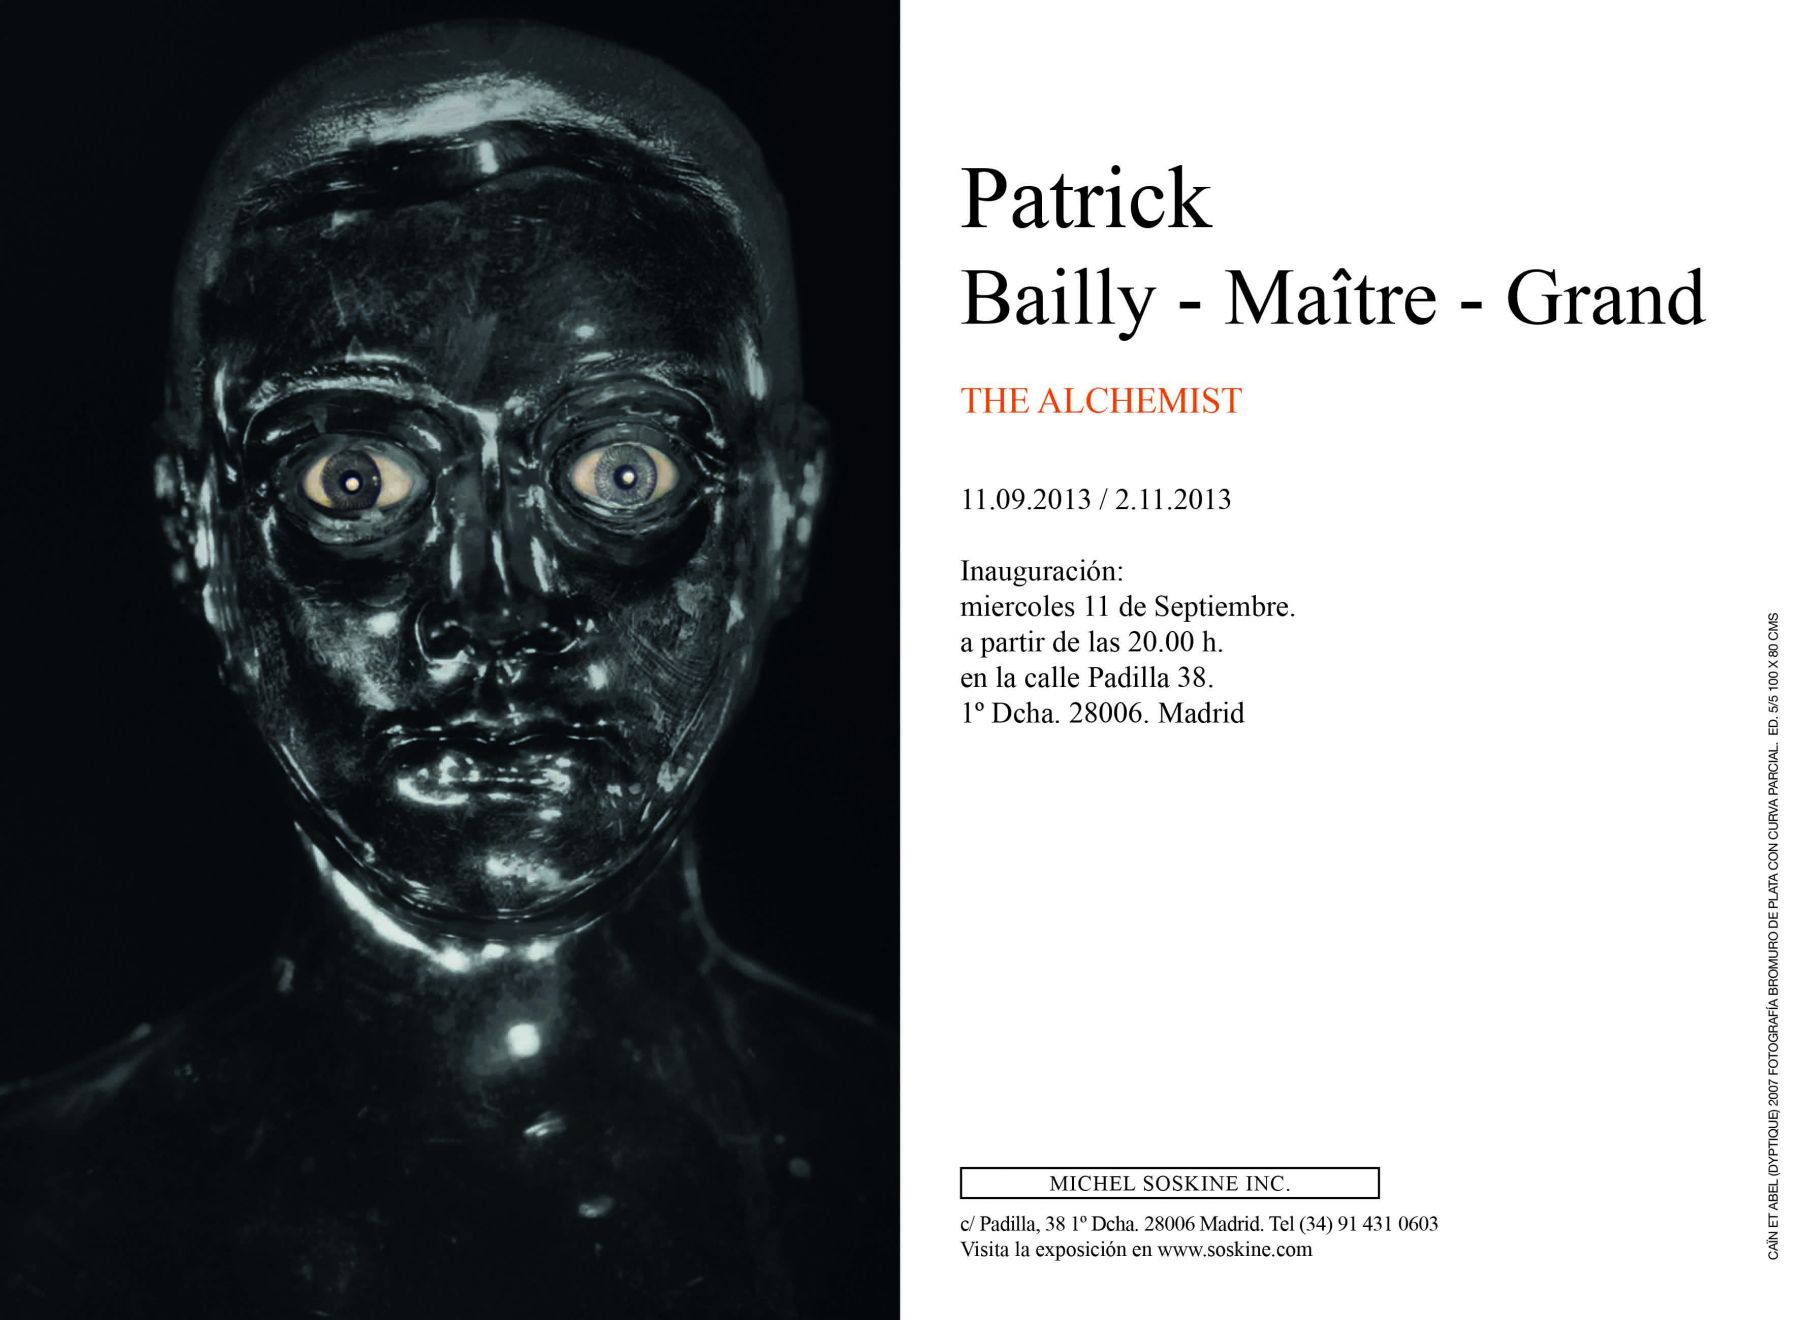 Patrick Bailly-Maître-Grand, The Alchemist